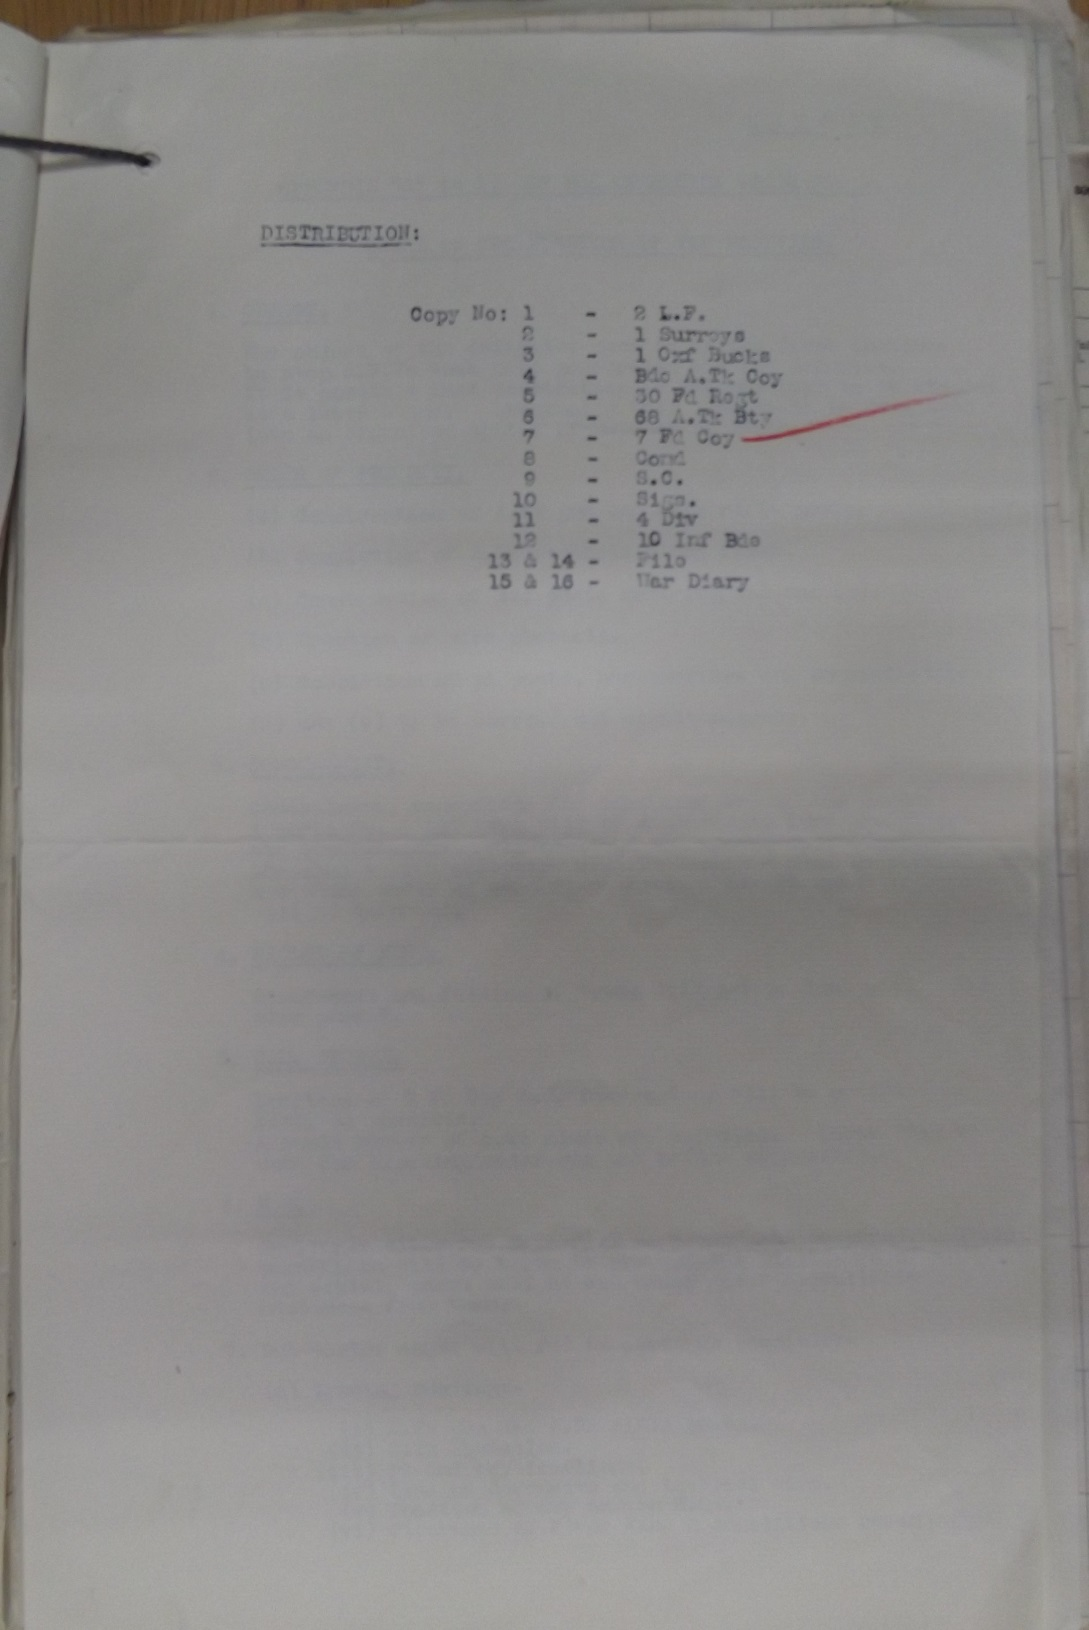 11 Inf Bde Operation Order No 3 19 Oct 1939 pge 3